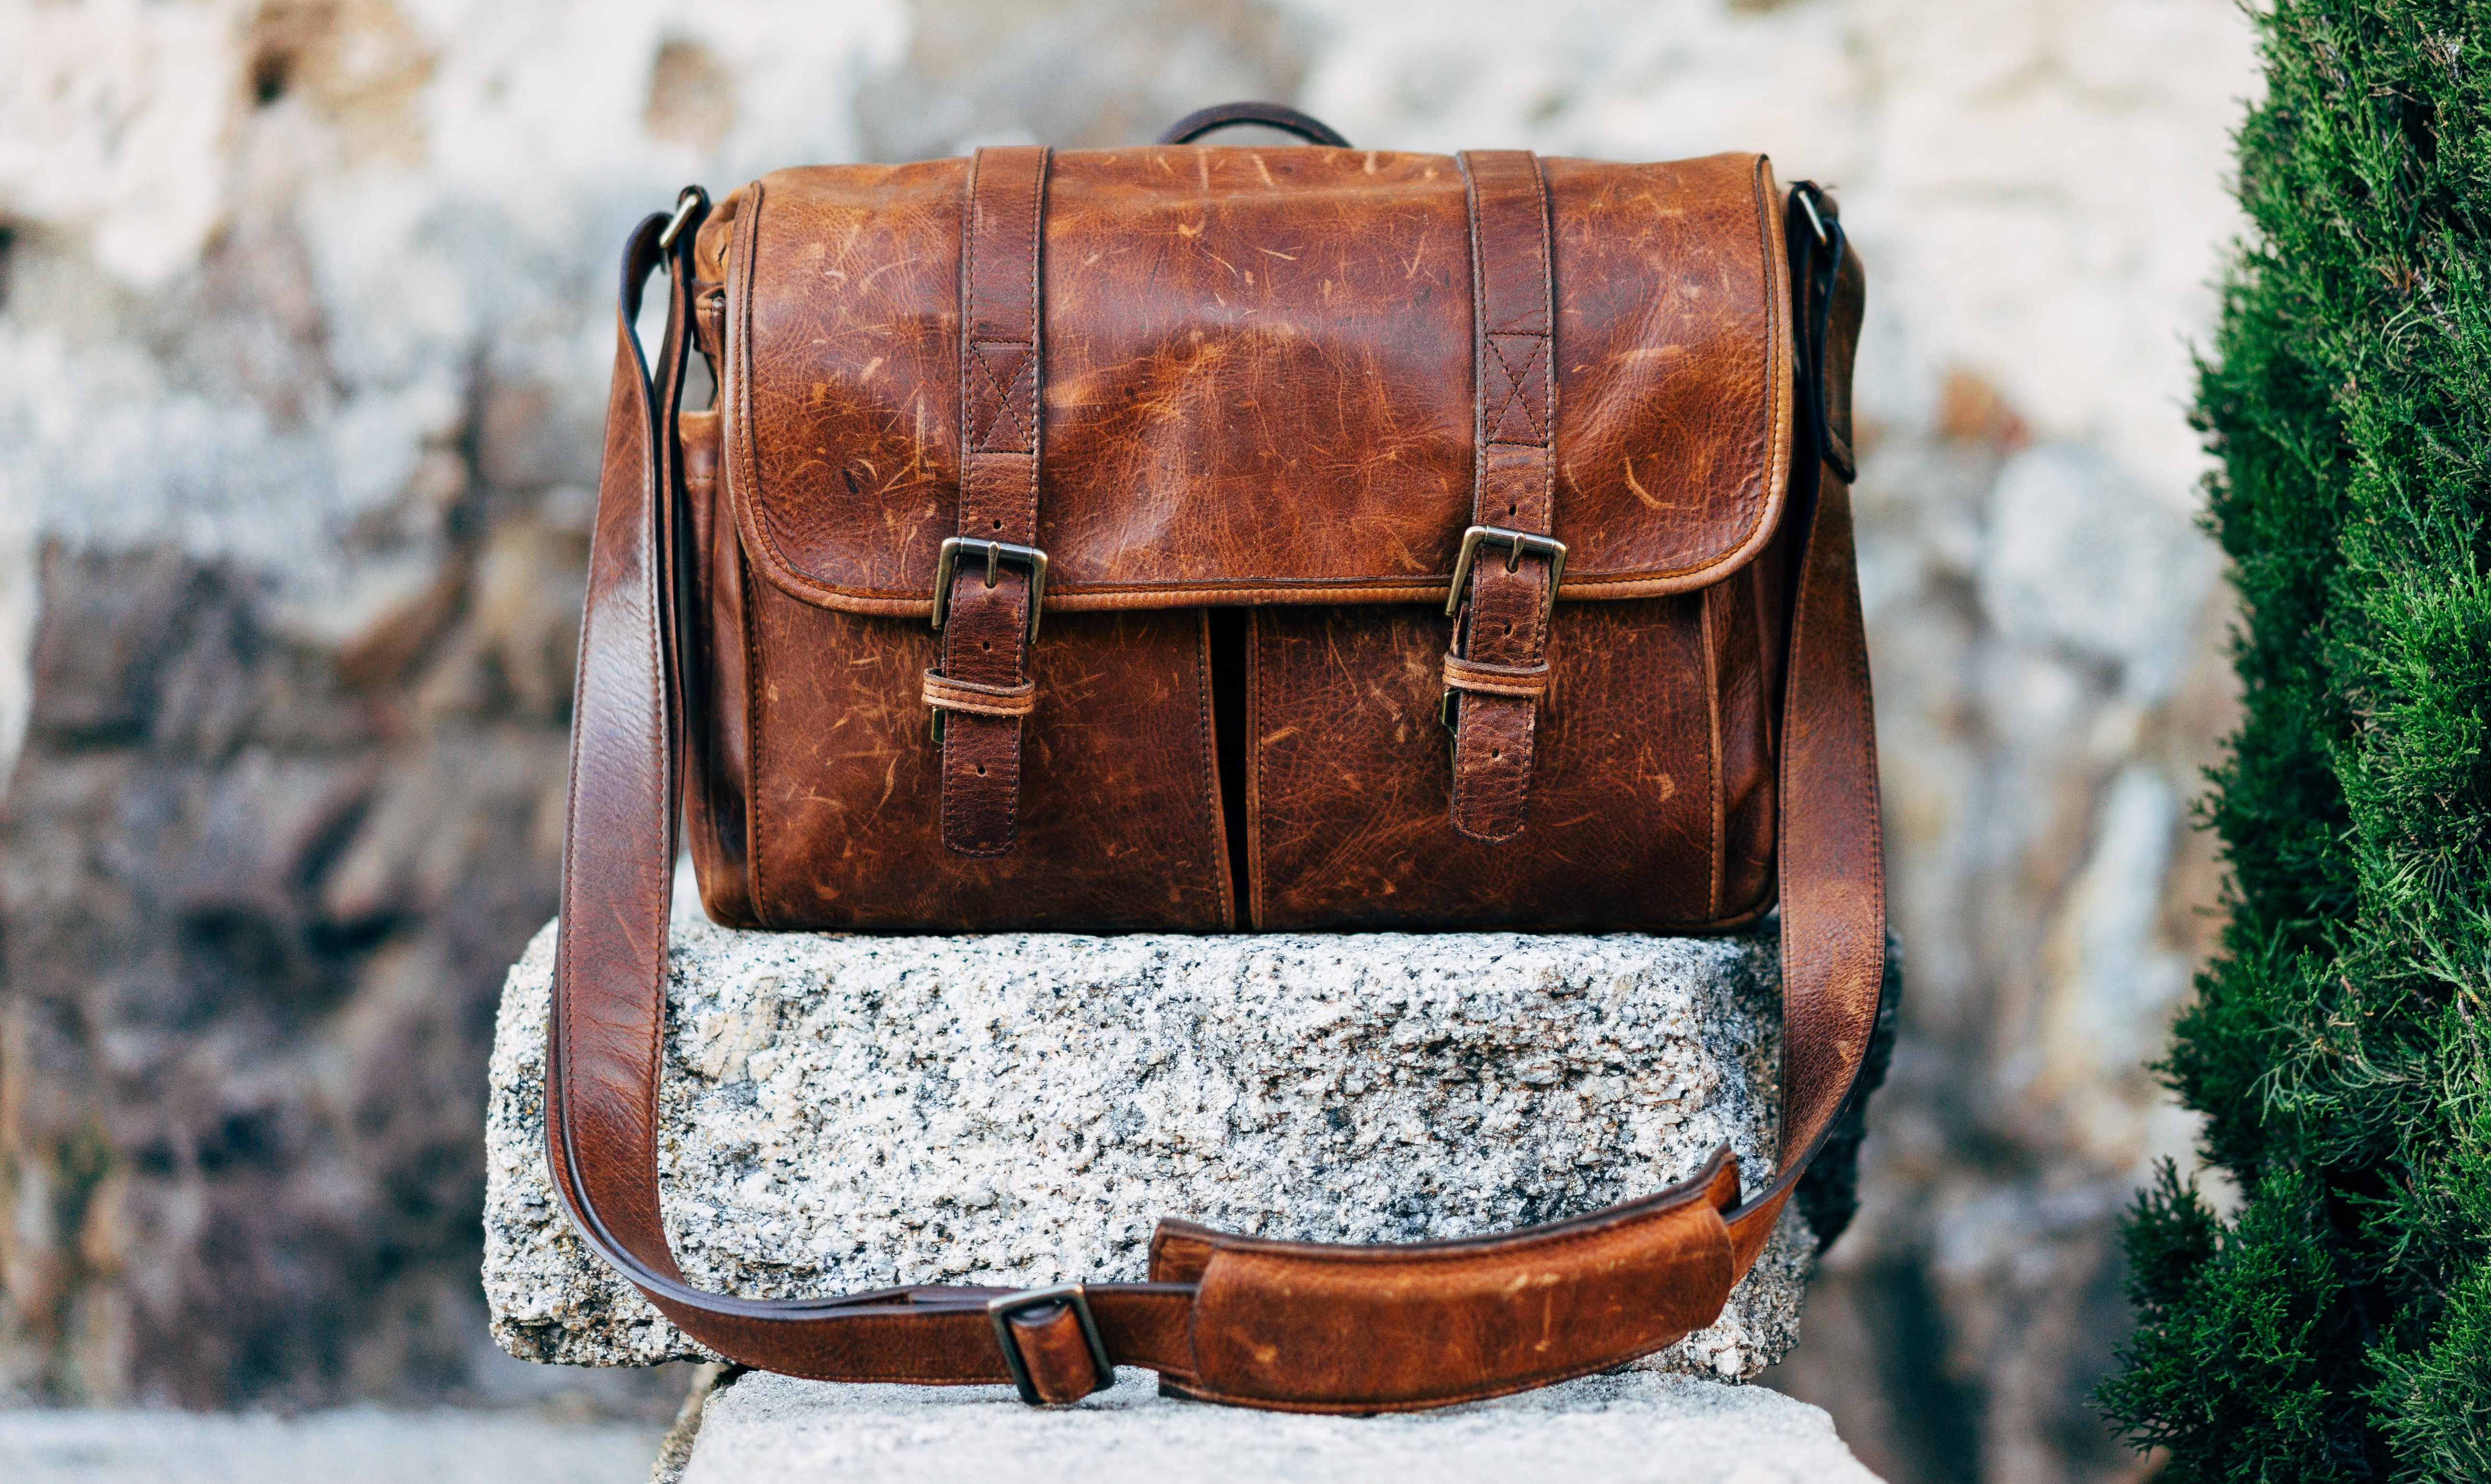 Uniquely Hand-Crafted Italian Leather